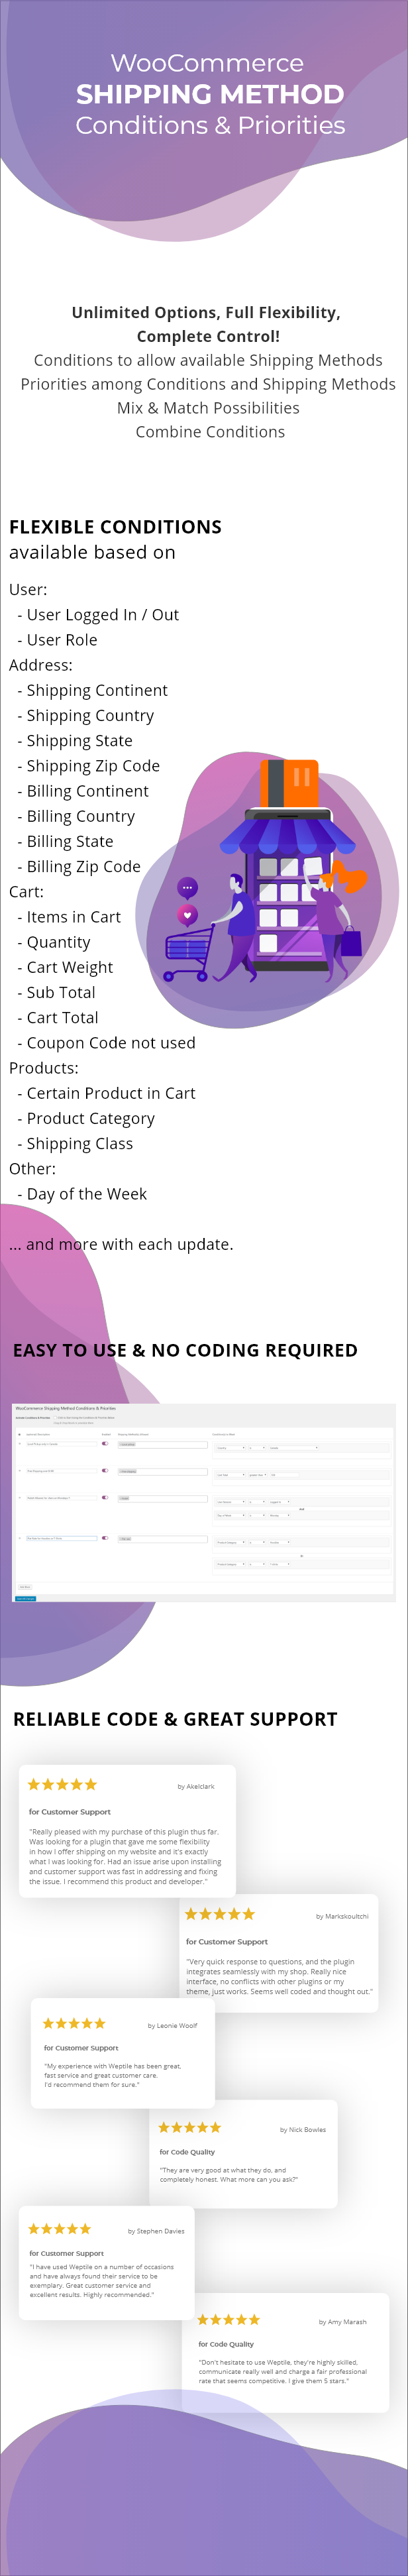 WooCommerce Shipping Method Conditions & Priorities - 1